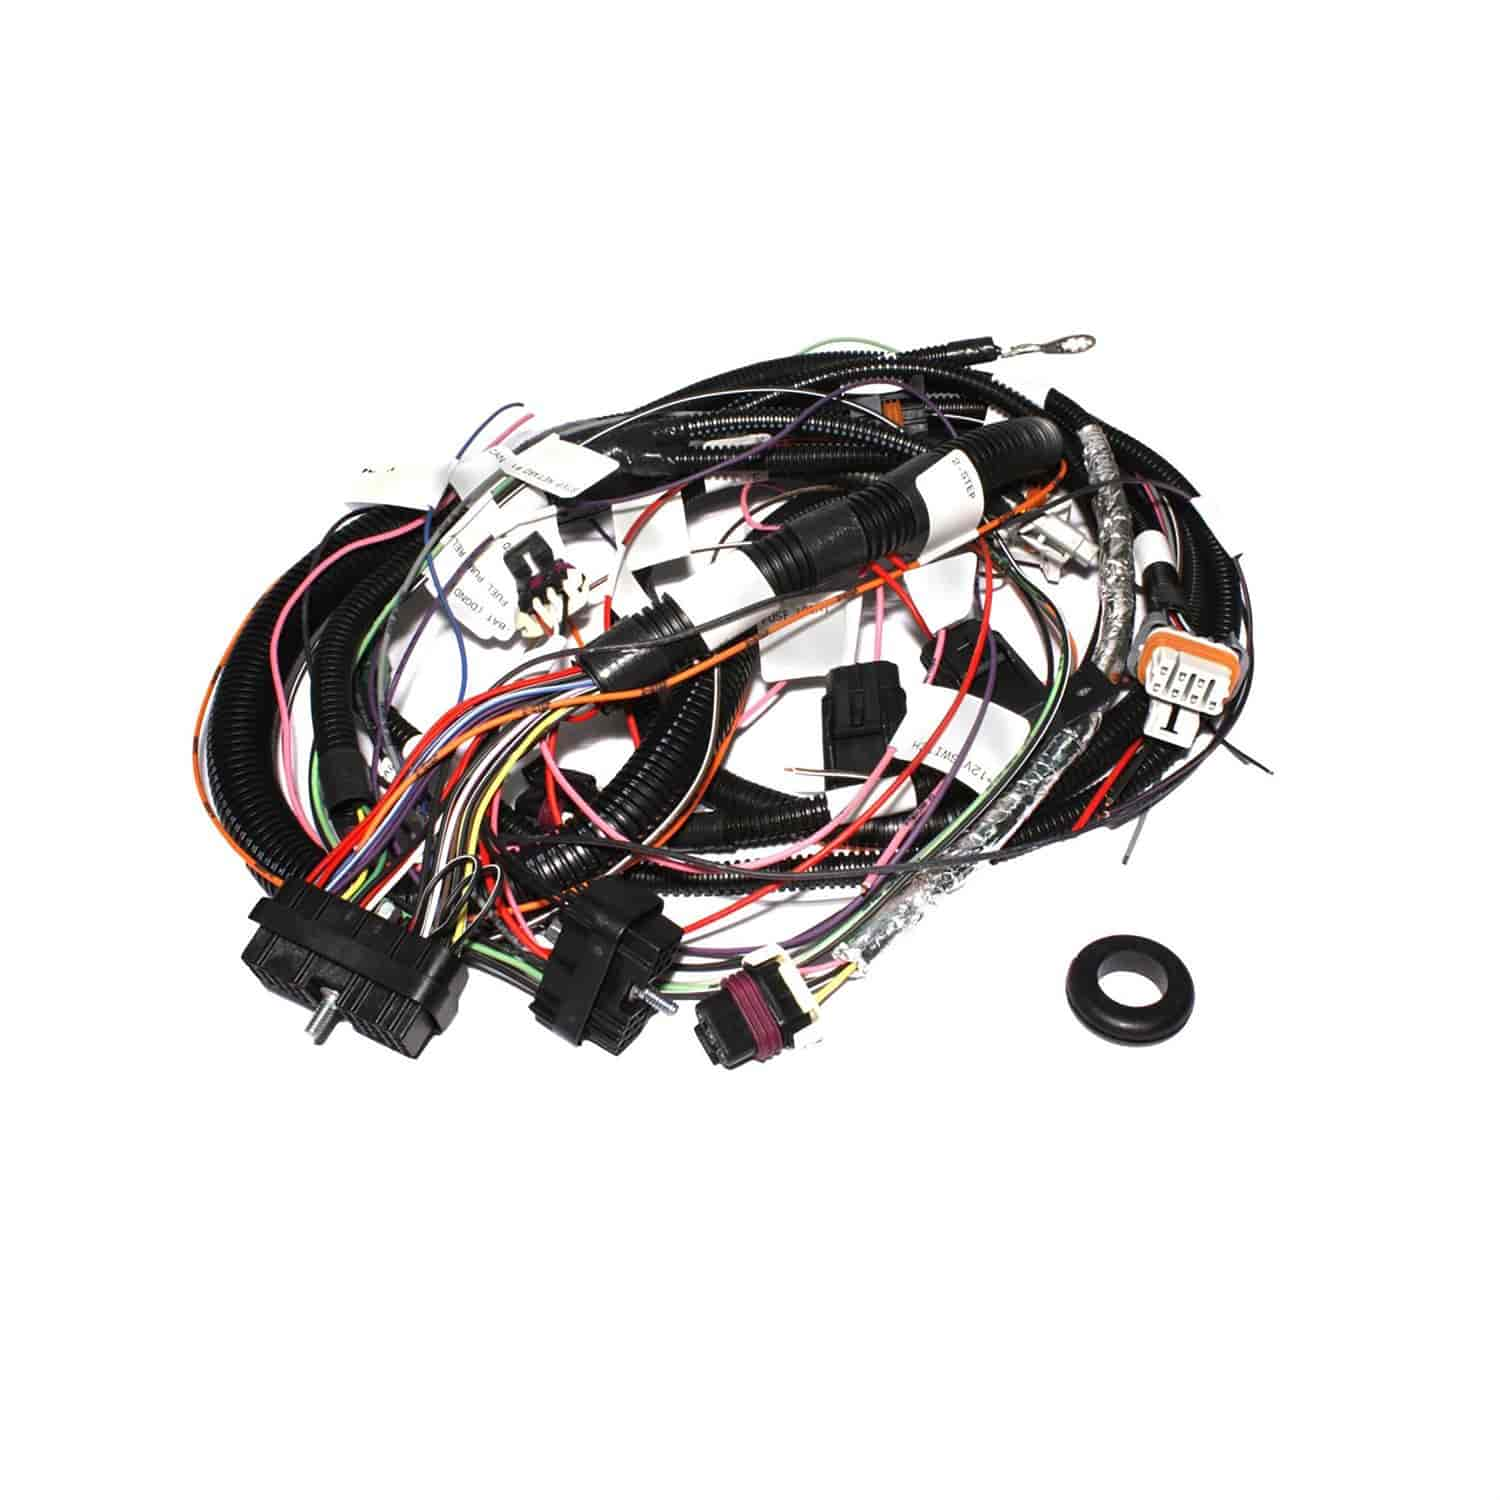 244 301972 fast 301972 xim fuel injection wiring harness for ls1 jegs fast xim wiring diagram at gsmx.co